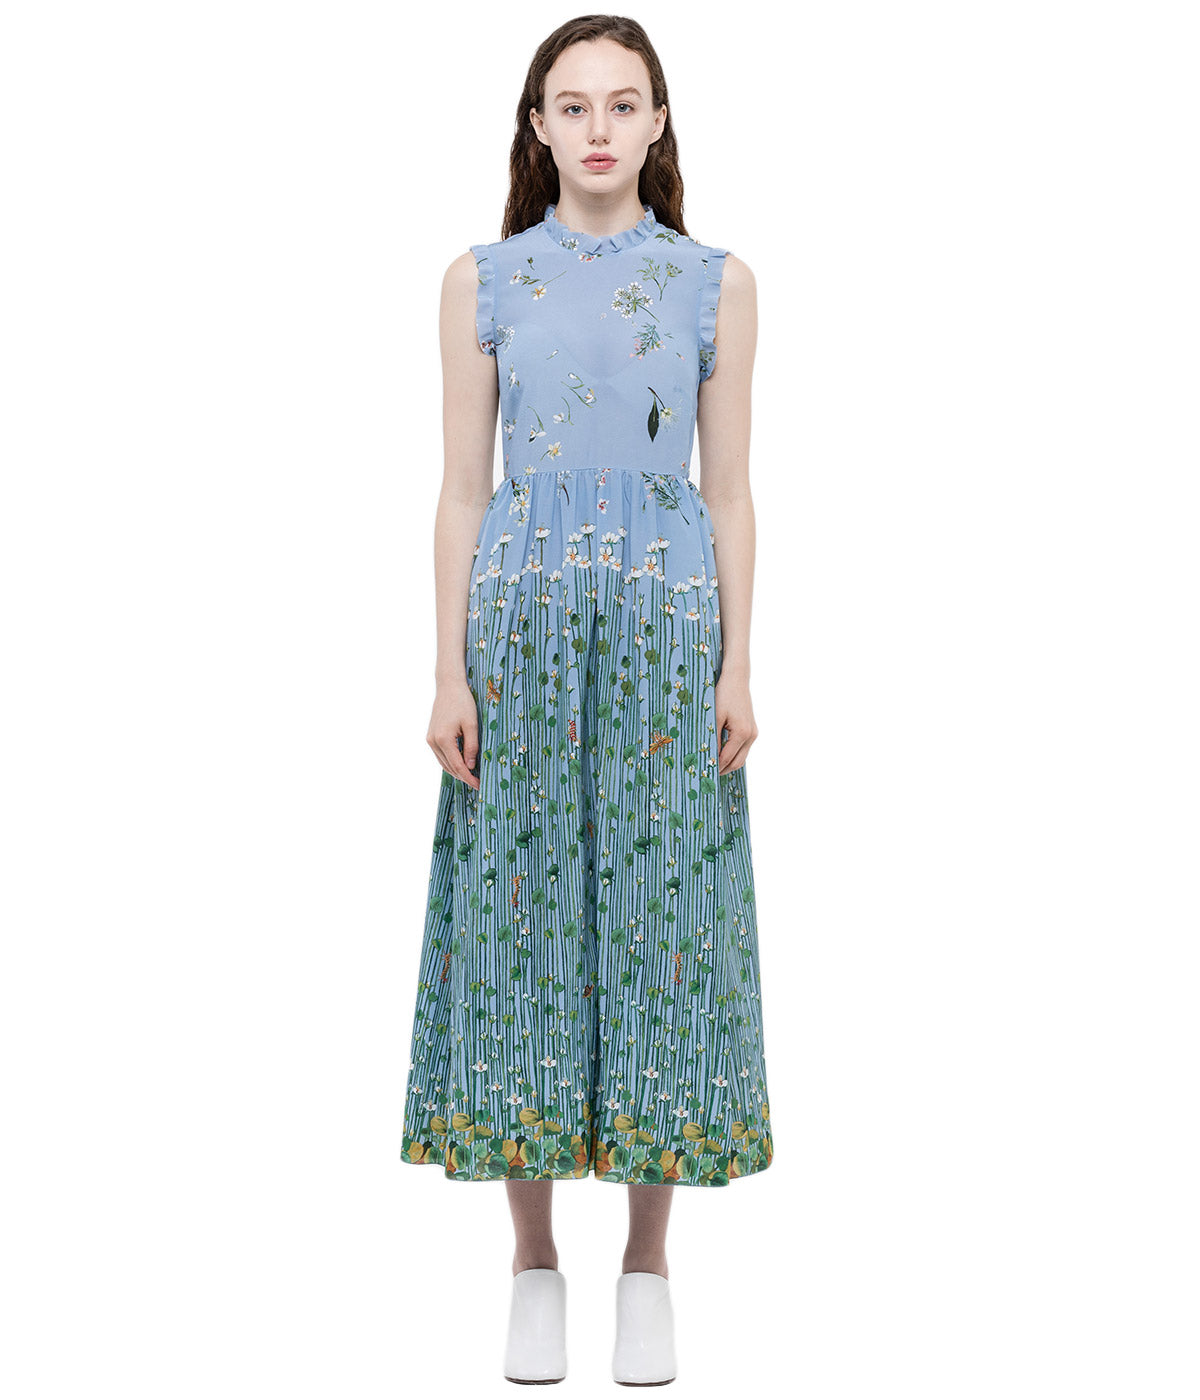 Blue Floral Print Summer Dress